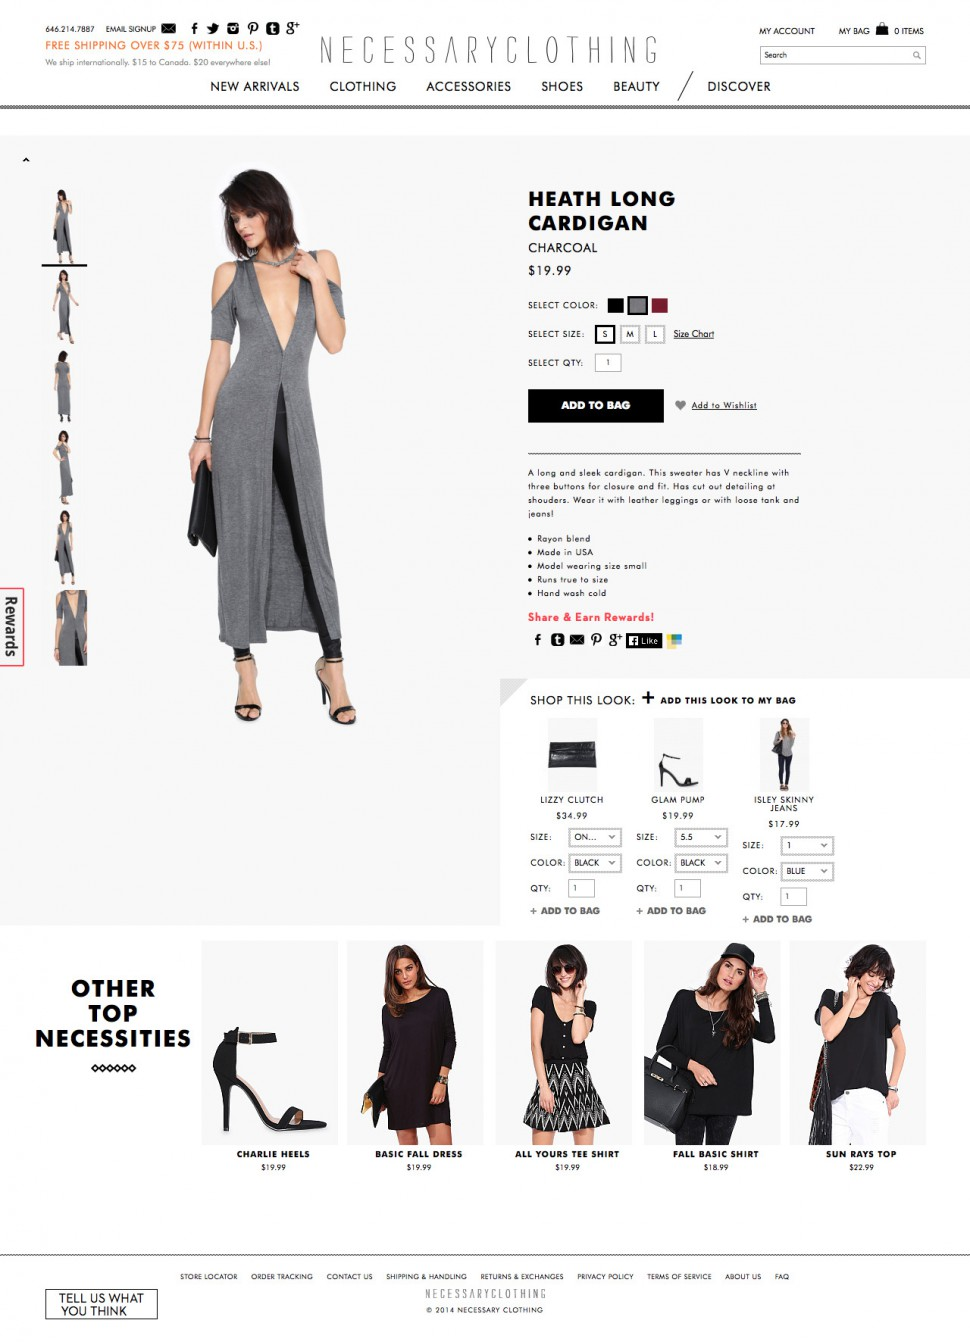 necessary clothing - product page